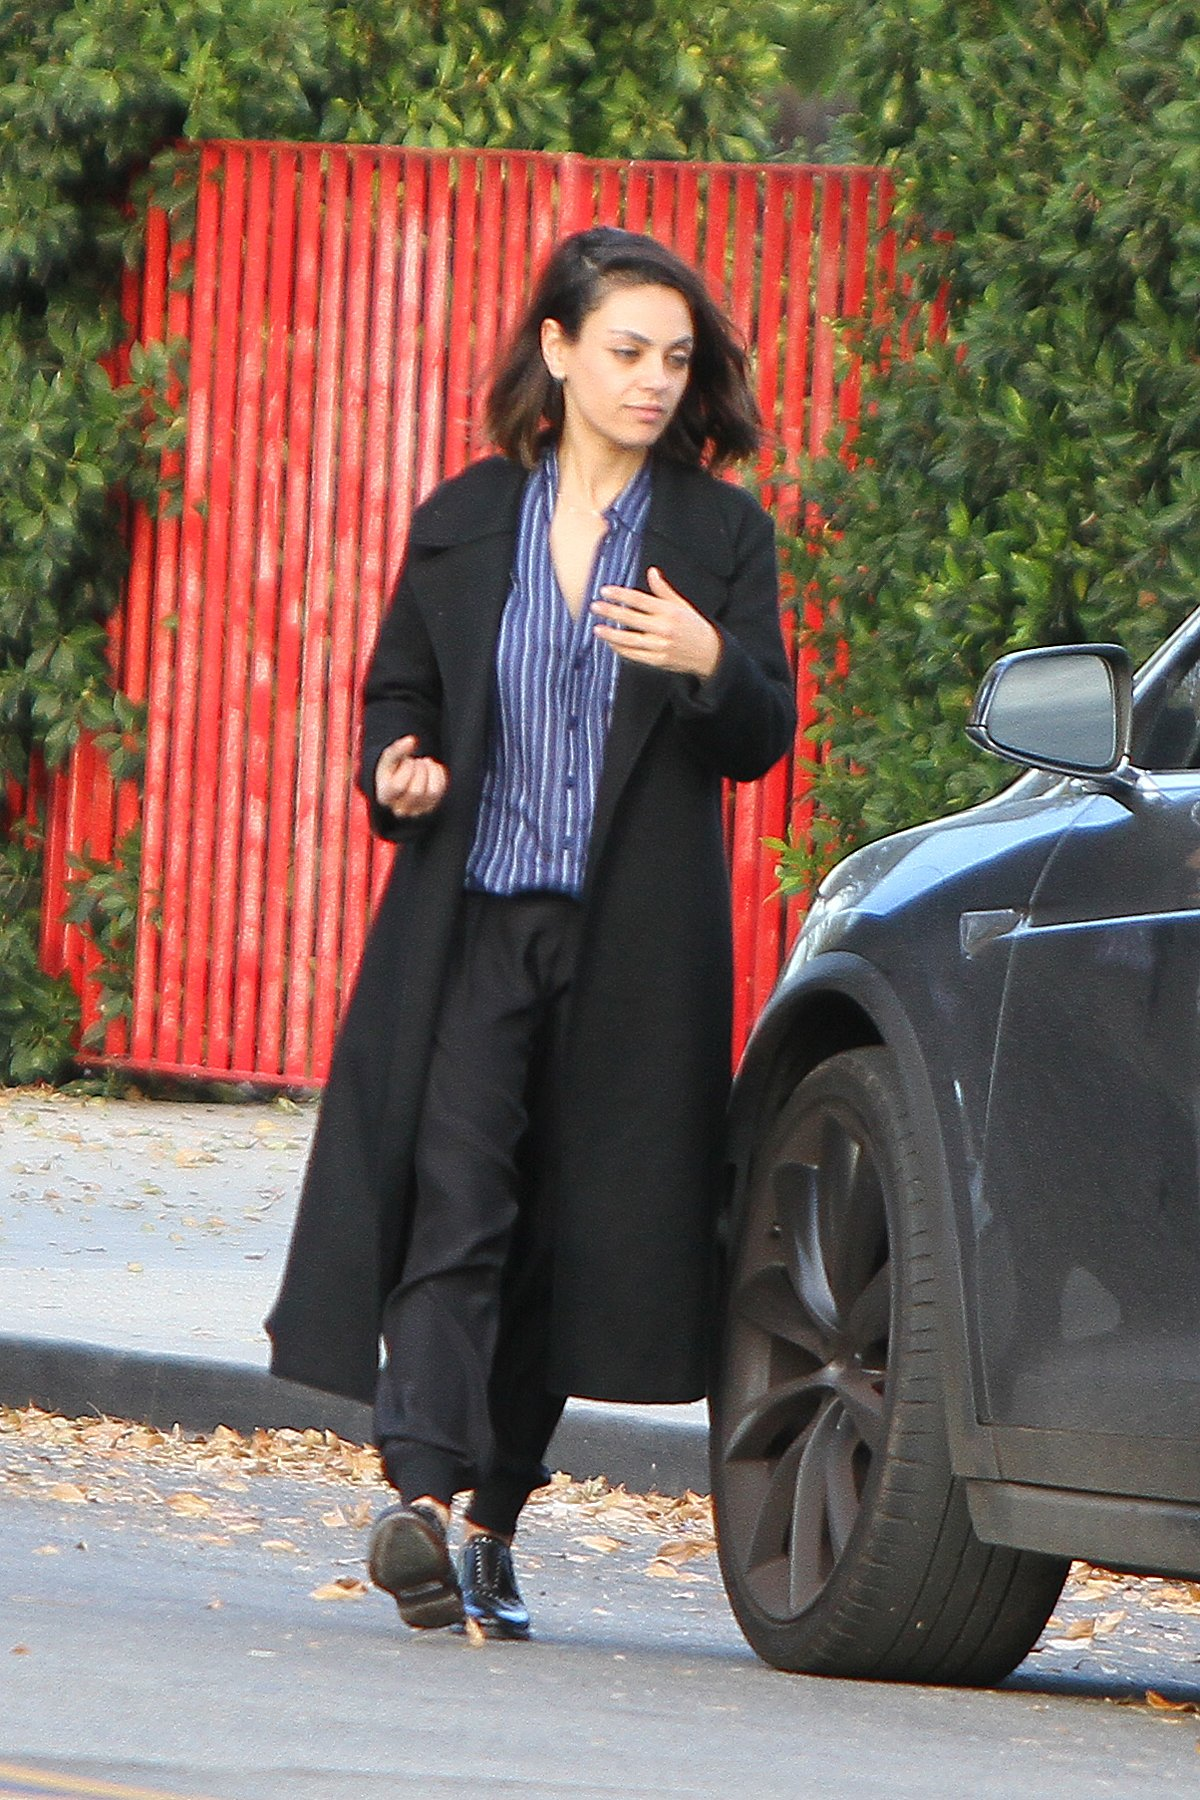 EXCLUSIVE: Mila Kunis suited up running errands in Los Angeles. 29 Nov 2017 Pictured: Mila Kunis suited up running errands in Los Angeles., Image: 356468496, License: Rights-managed, Restrictions: NO Germany, Italy, Model Release: no, Credit line: Profimedia, Mega Agency